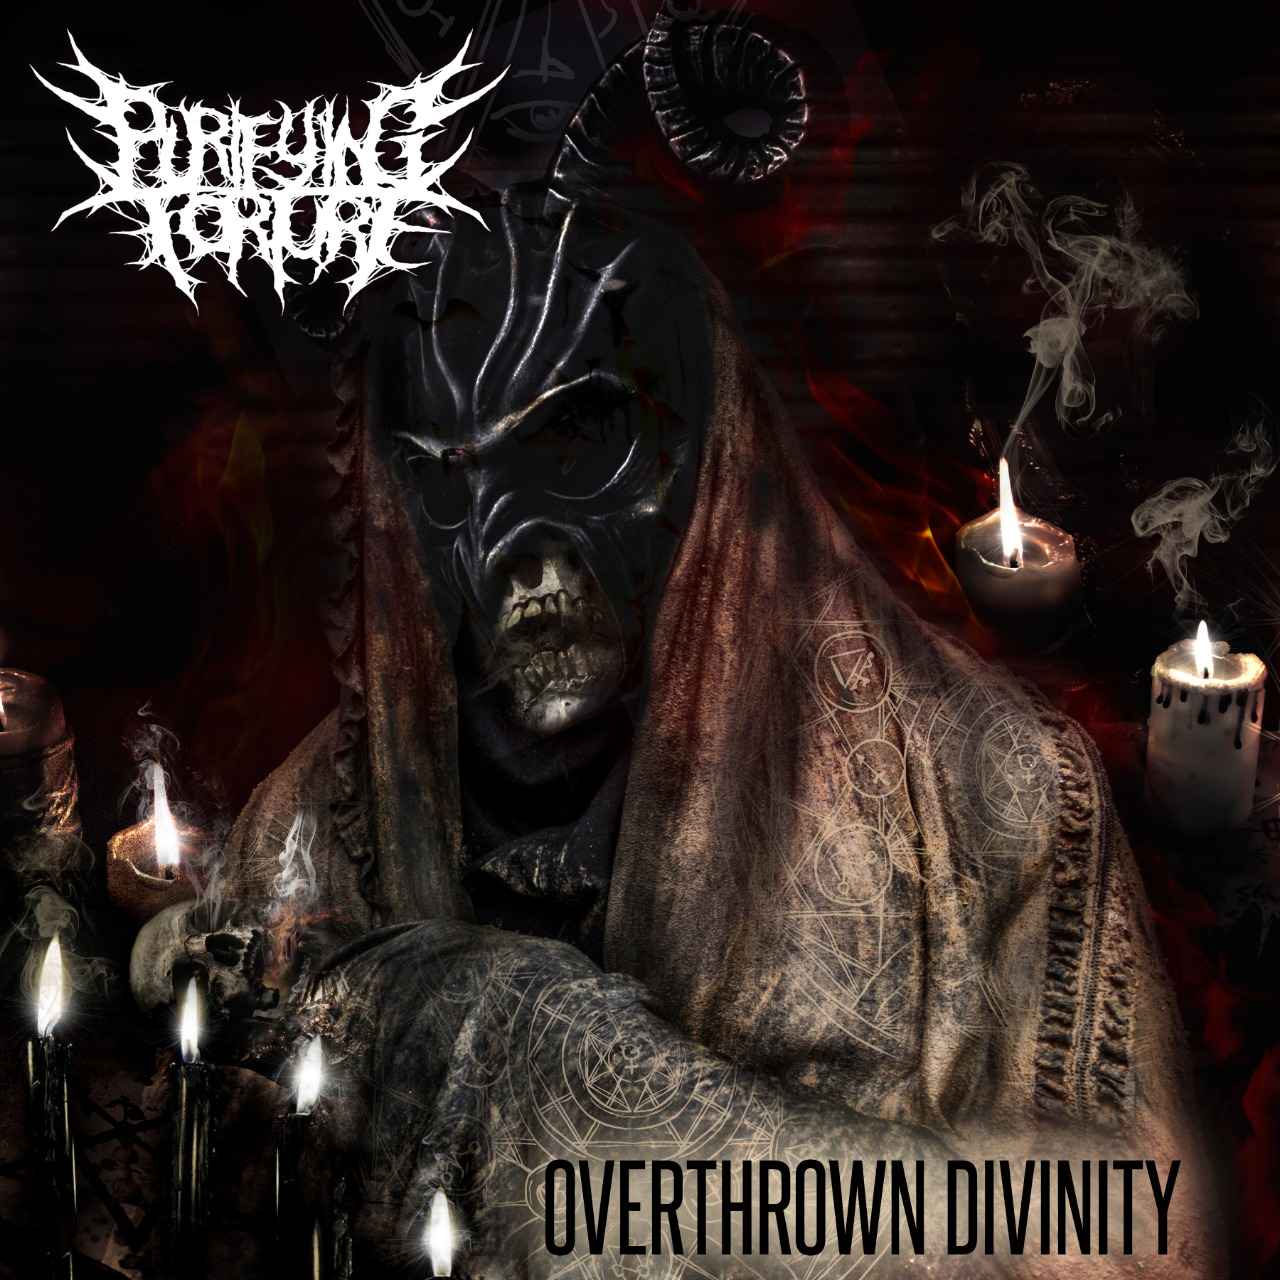 purifying-torture